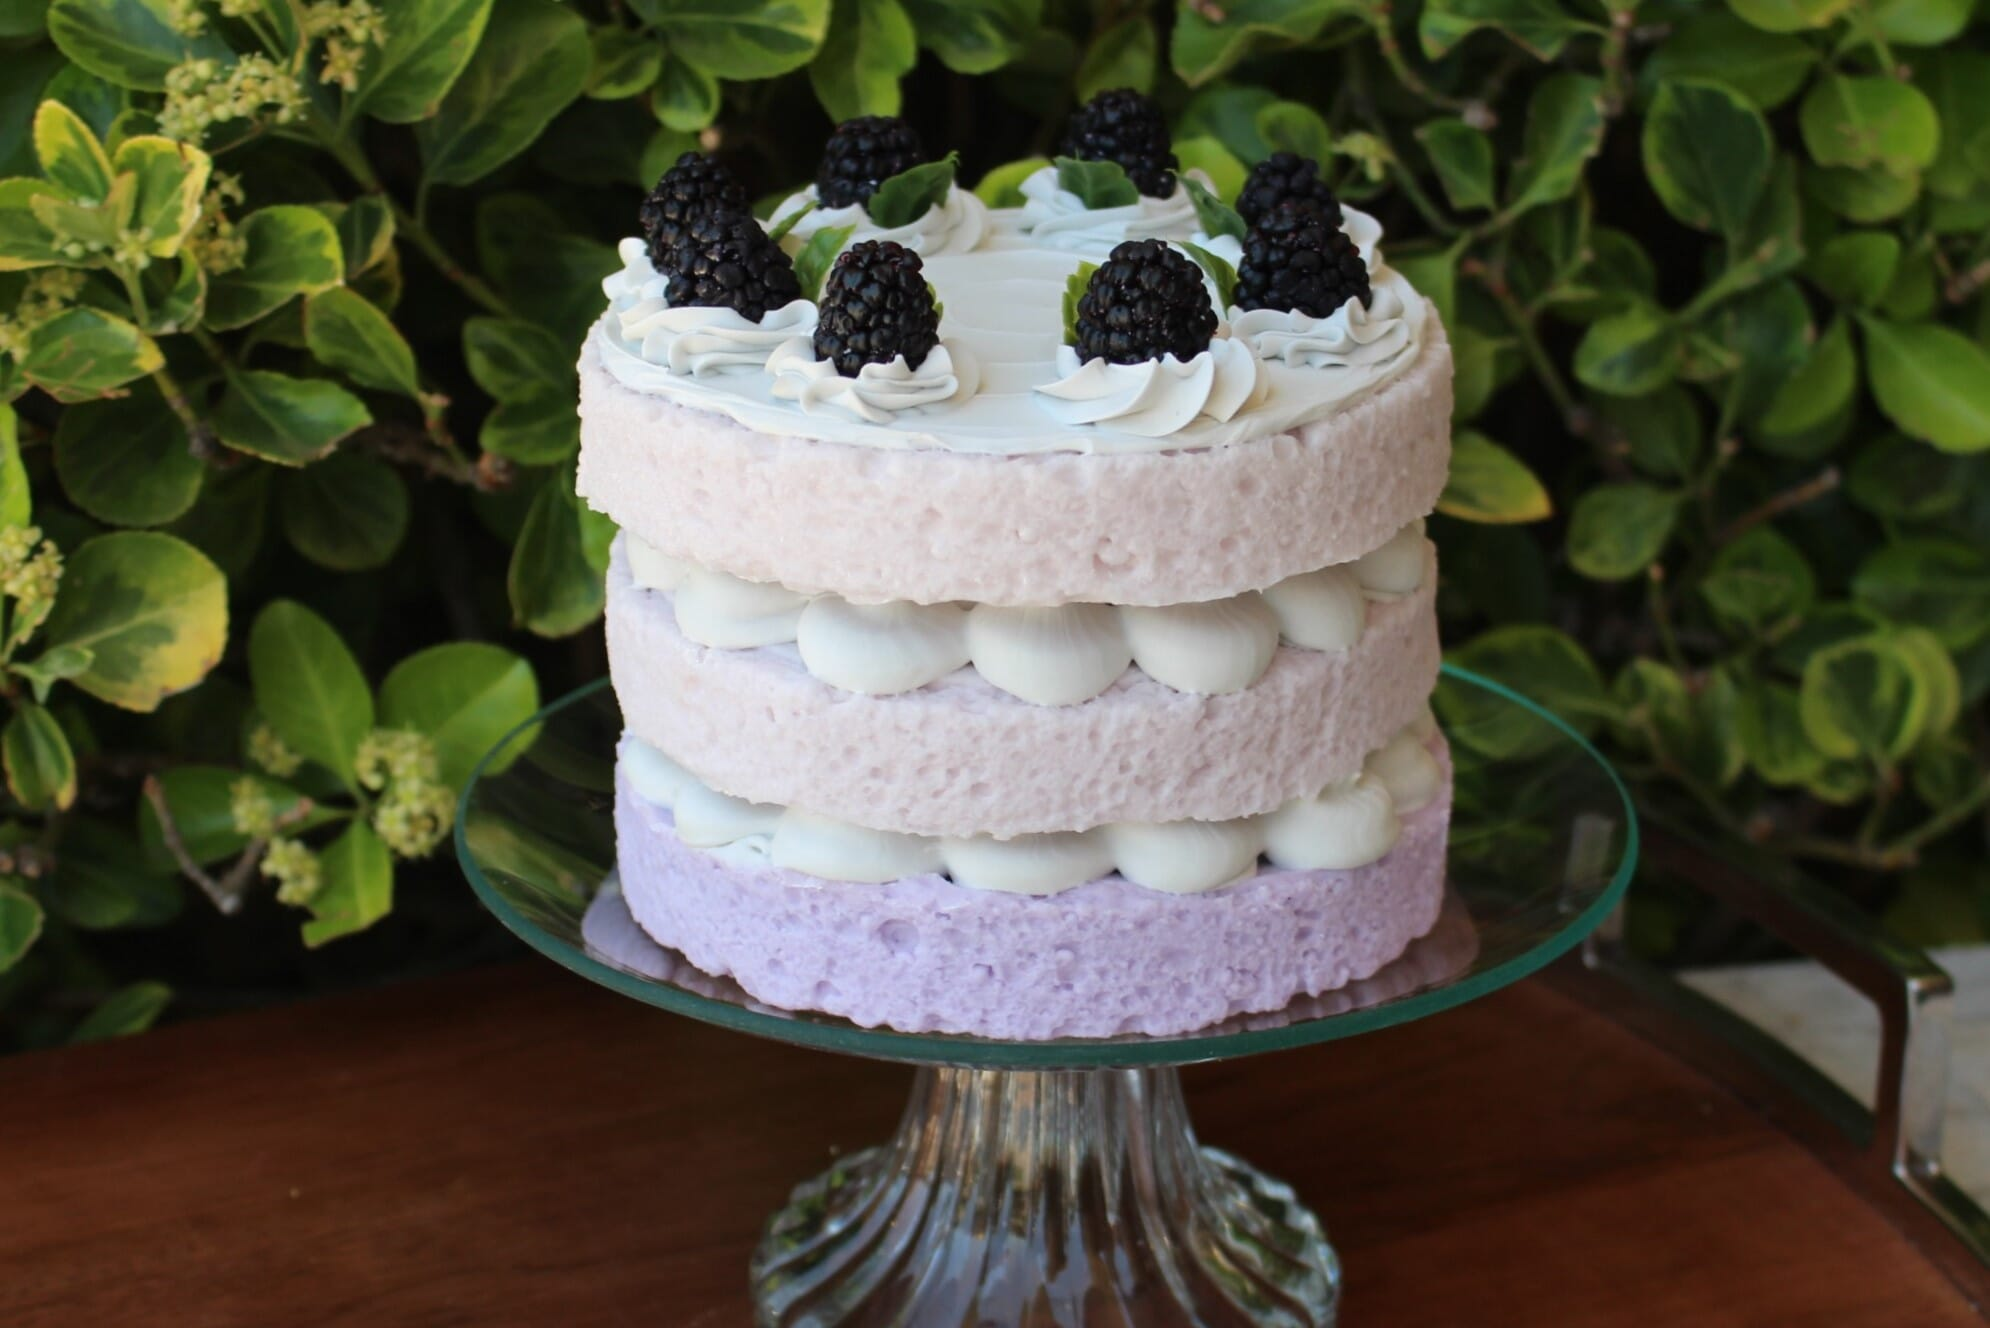 Fake Vanilla Frosted Layer Cake Topped with Black Berries